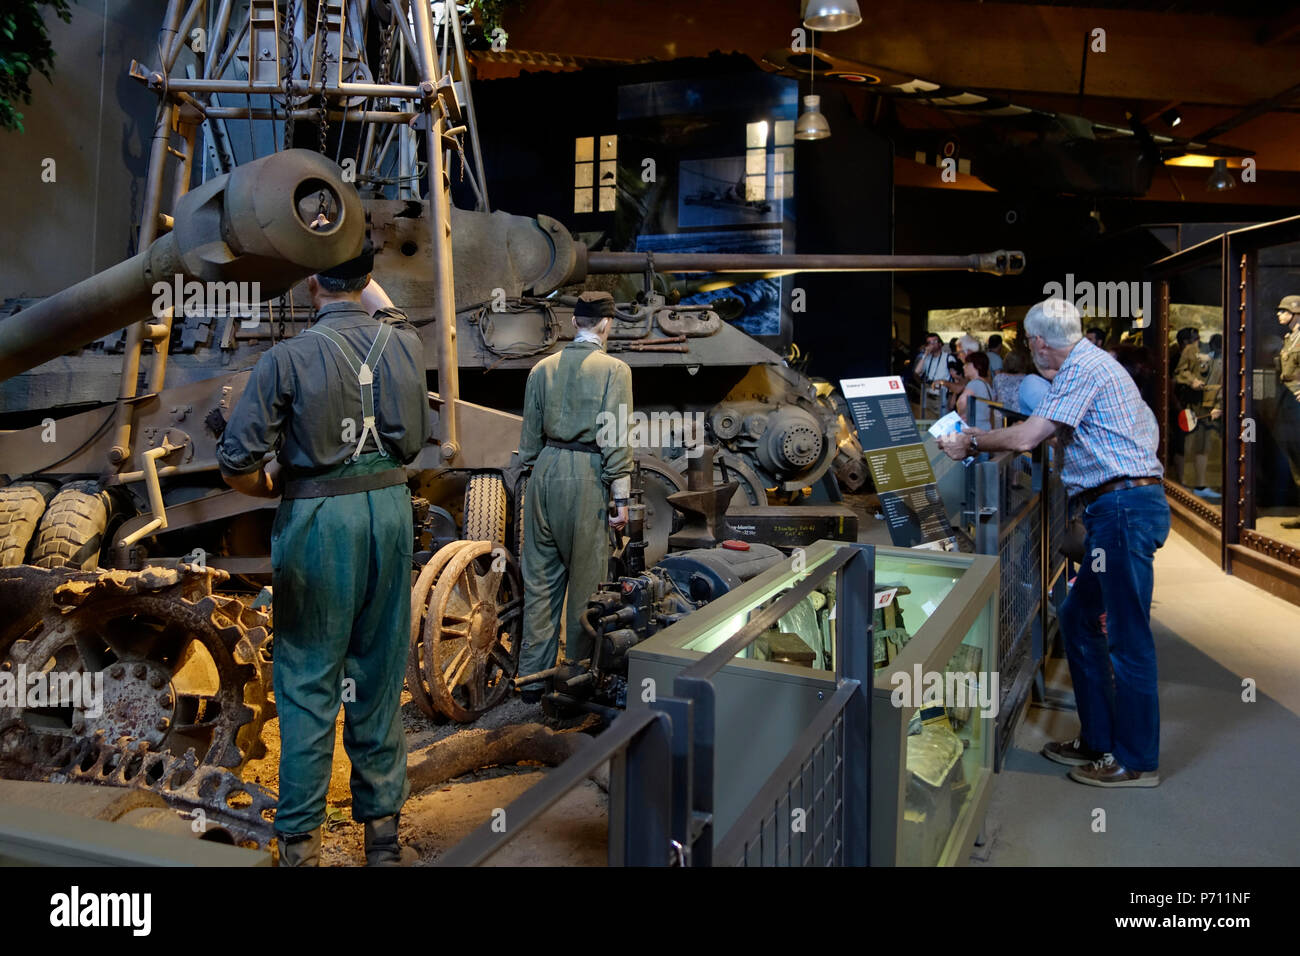 Visitors Looking At Wwii Diorama At The Overlord Museum Near Omaha Beach About Ww2 Allied Landing During D Day Colleville Sur Mer Normandy France Stock Photo Alamy